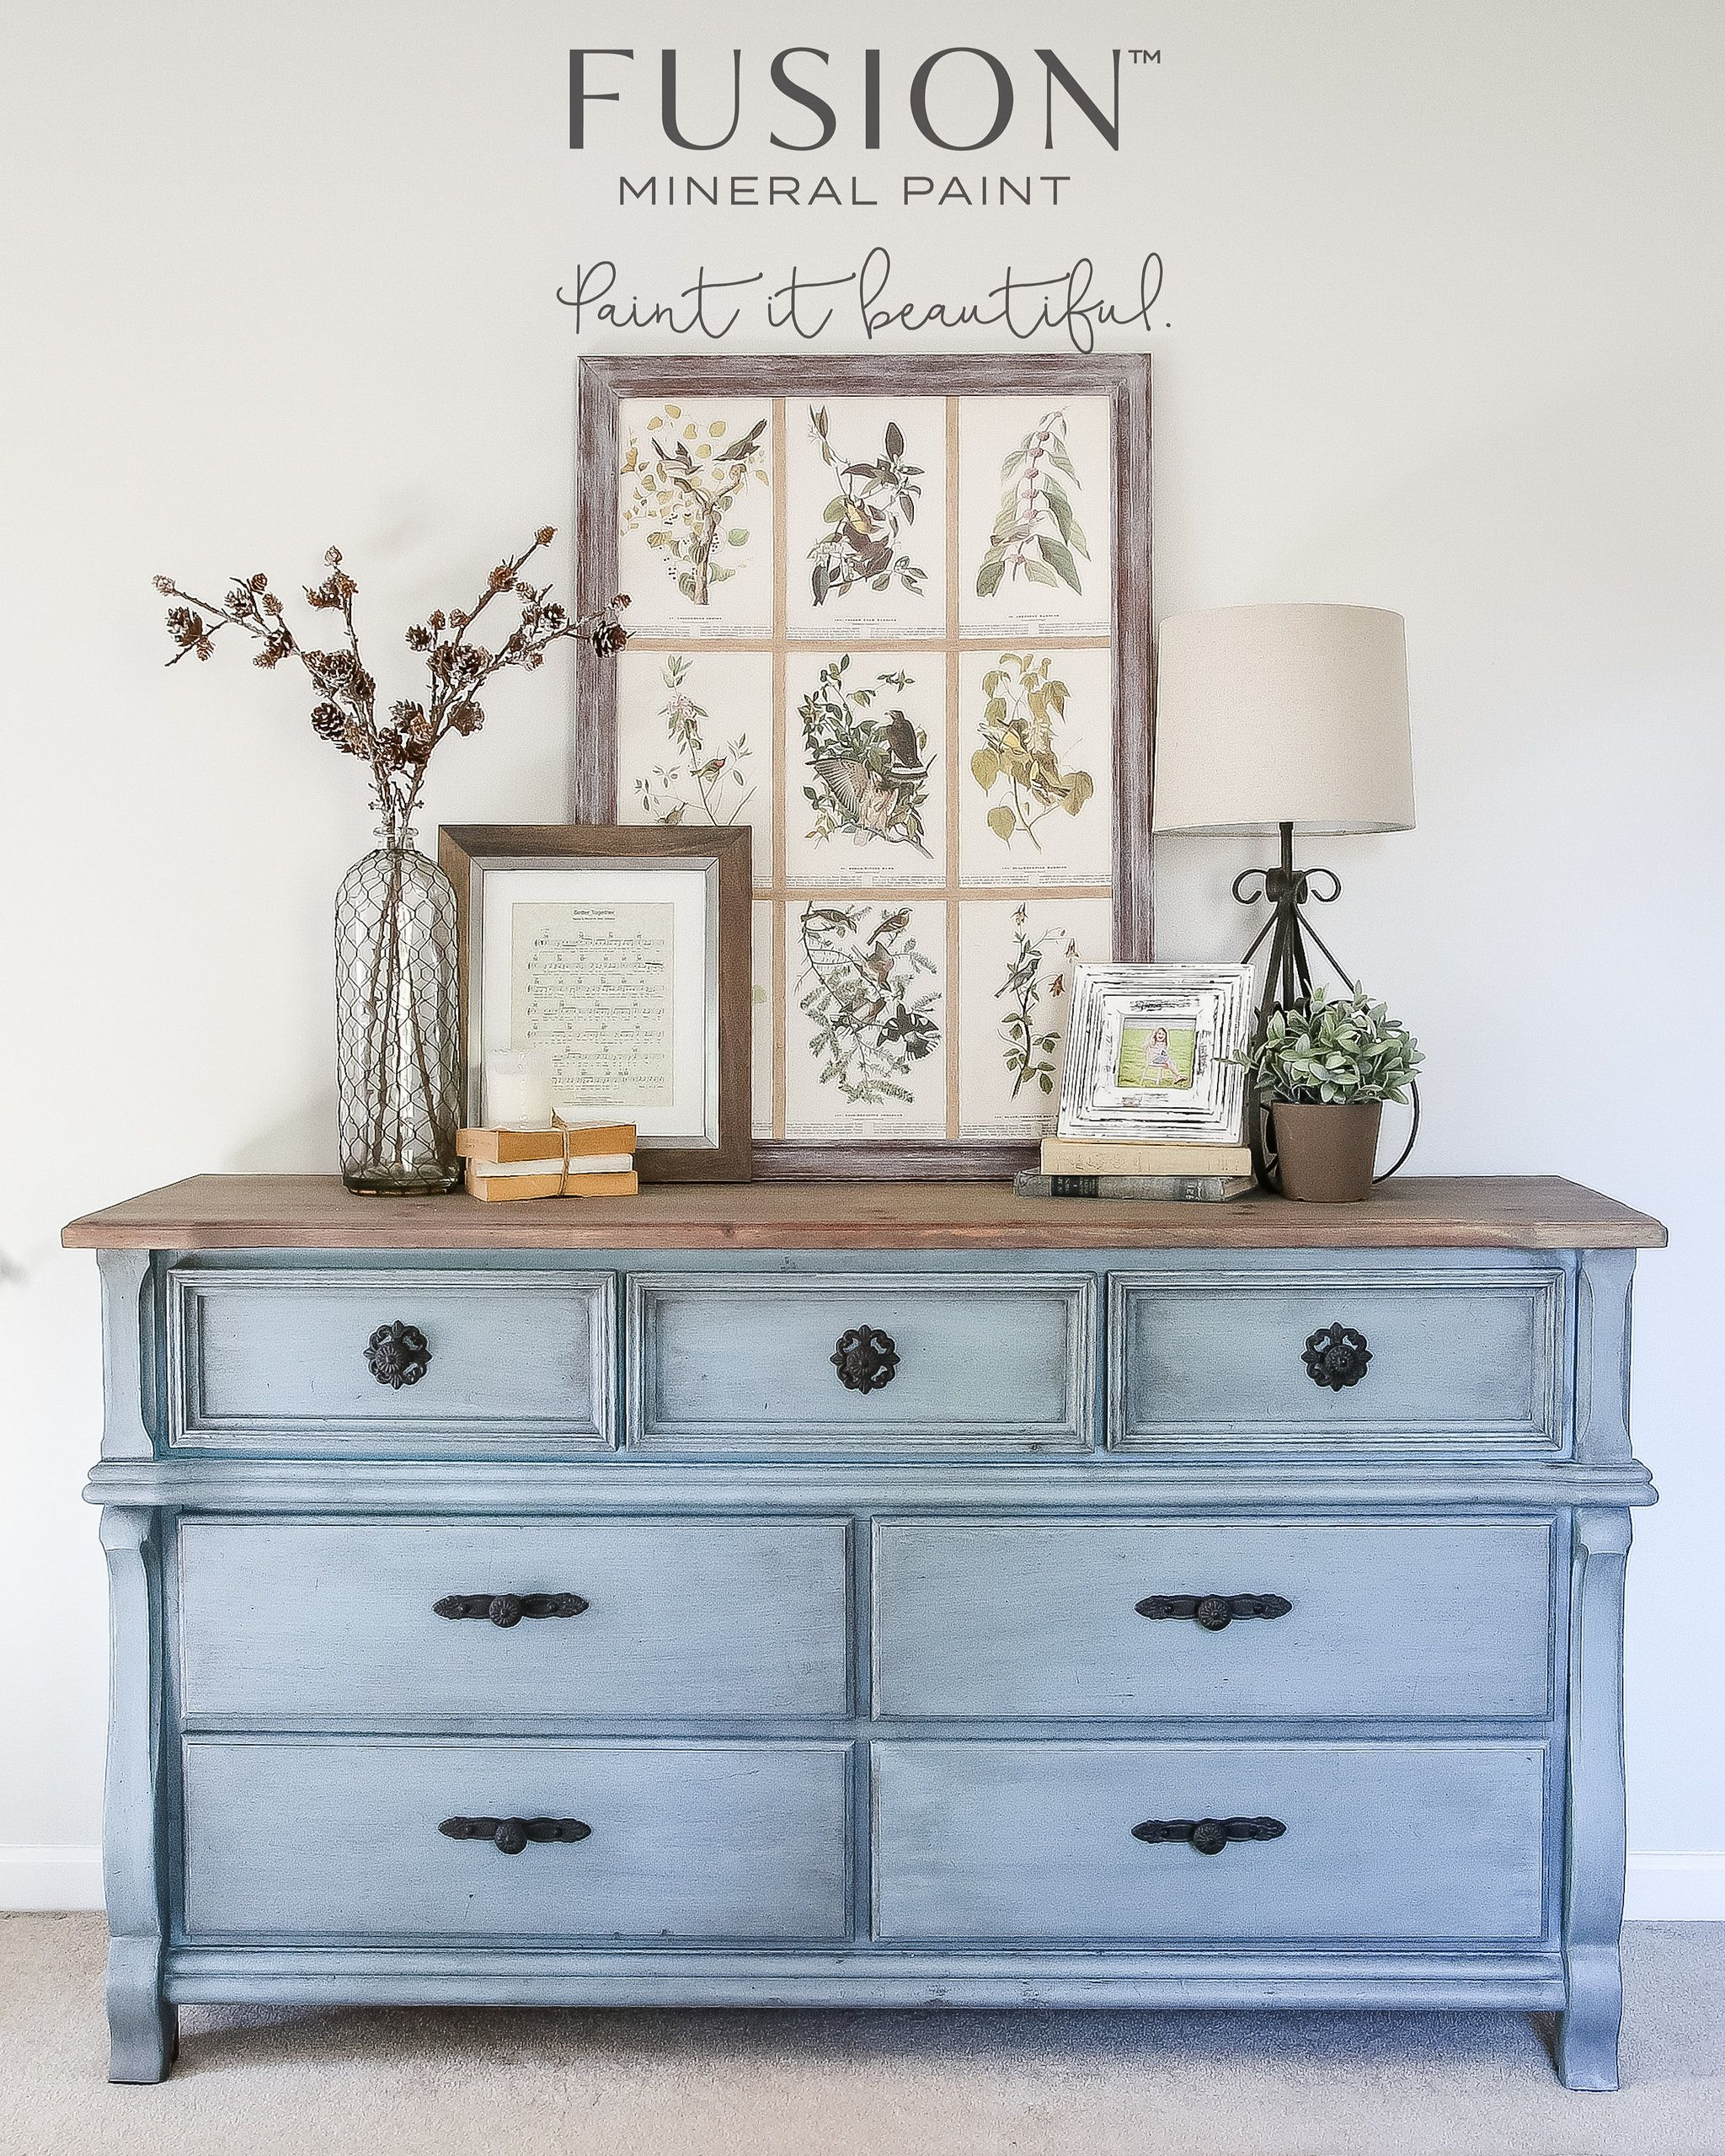 Get A Gorgeous Country Shabby Chic Distressed Finish Or Sleek Flawless Smooth Using The Right Tools And Accessories By Fusion Mineral Paint